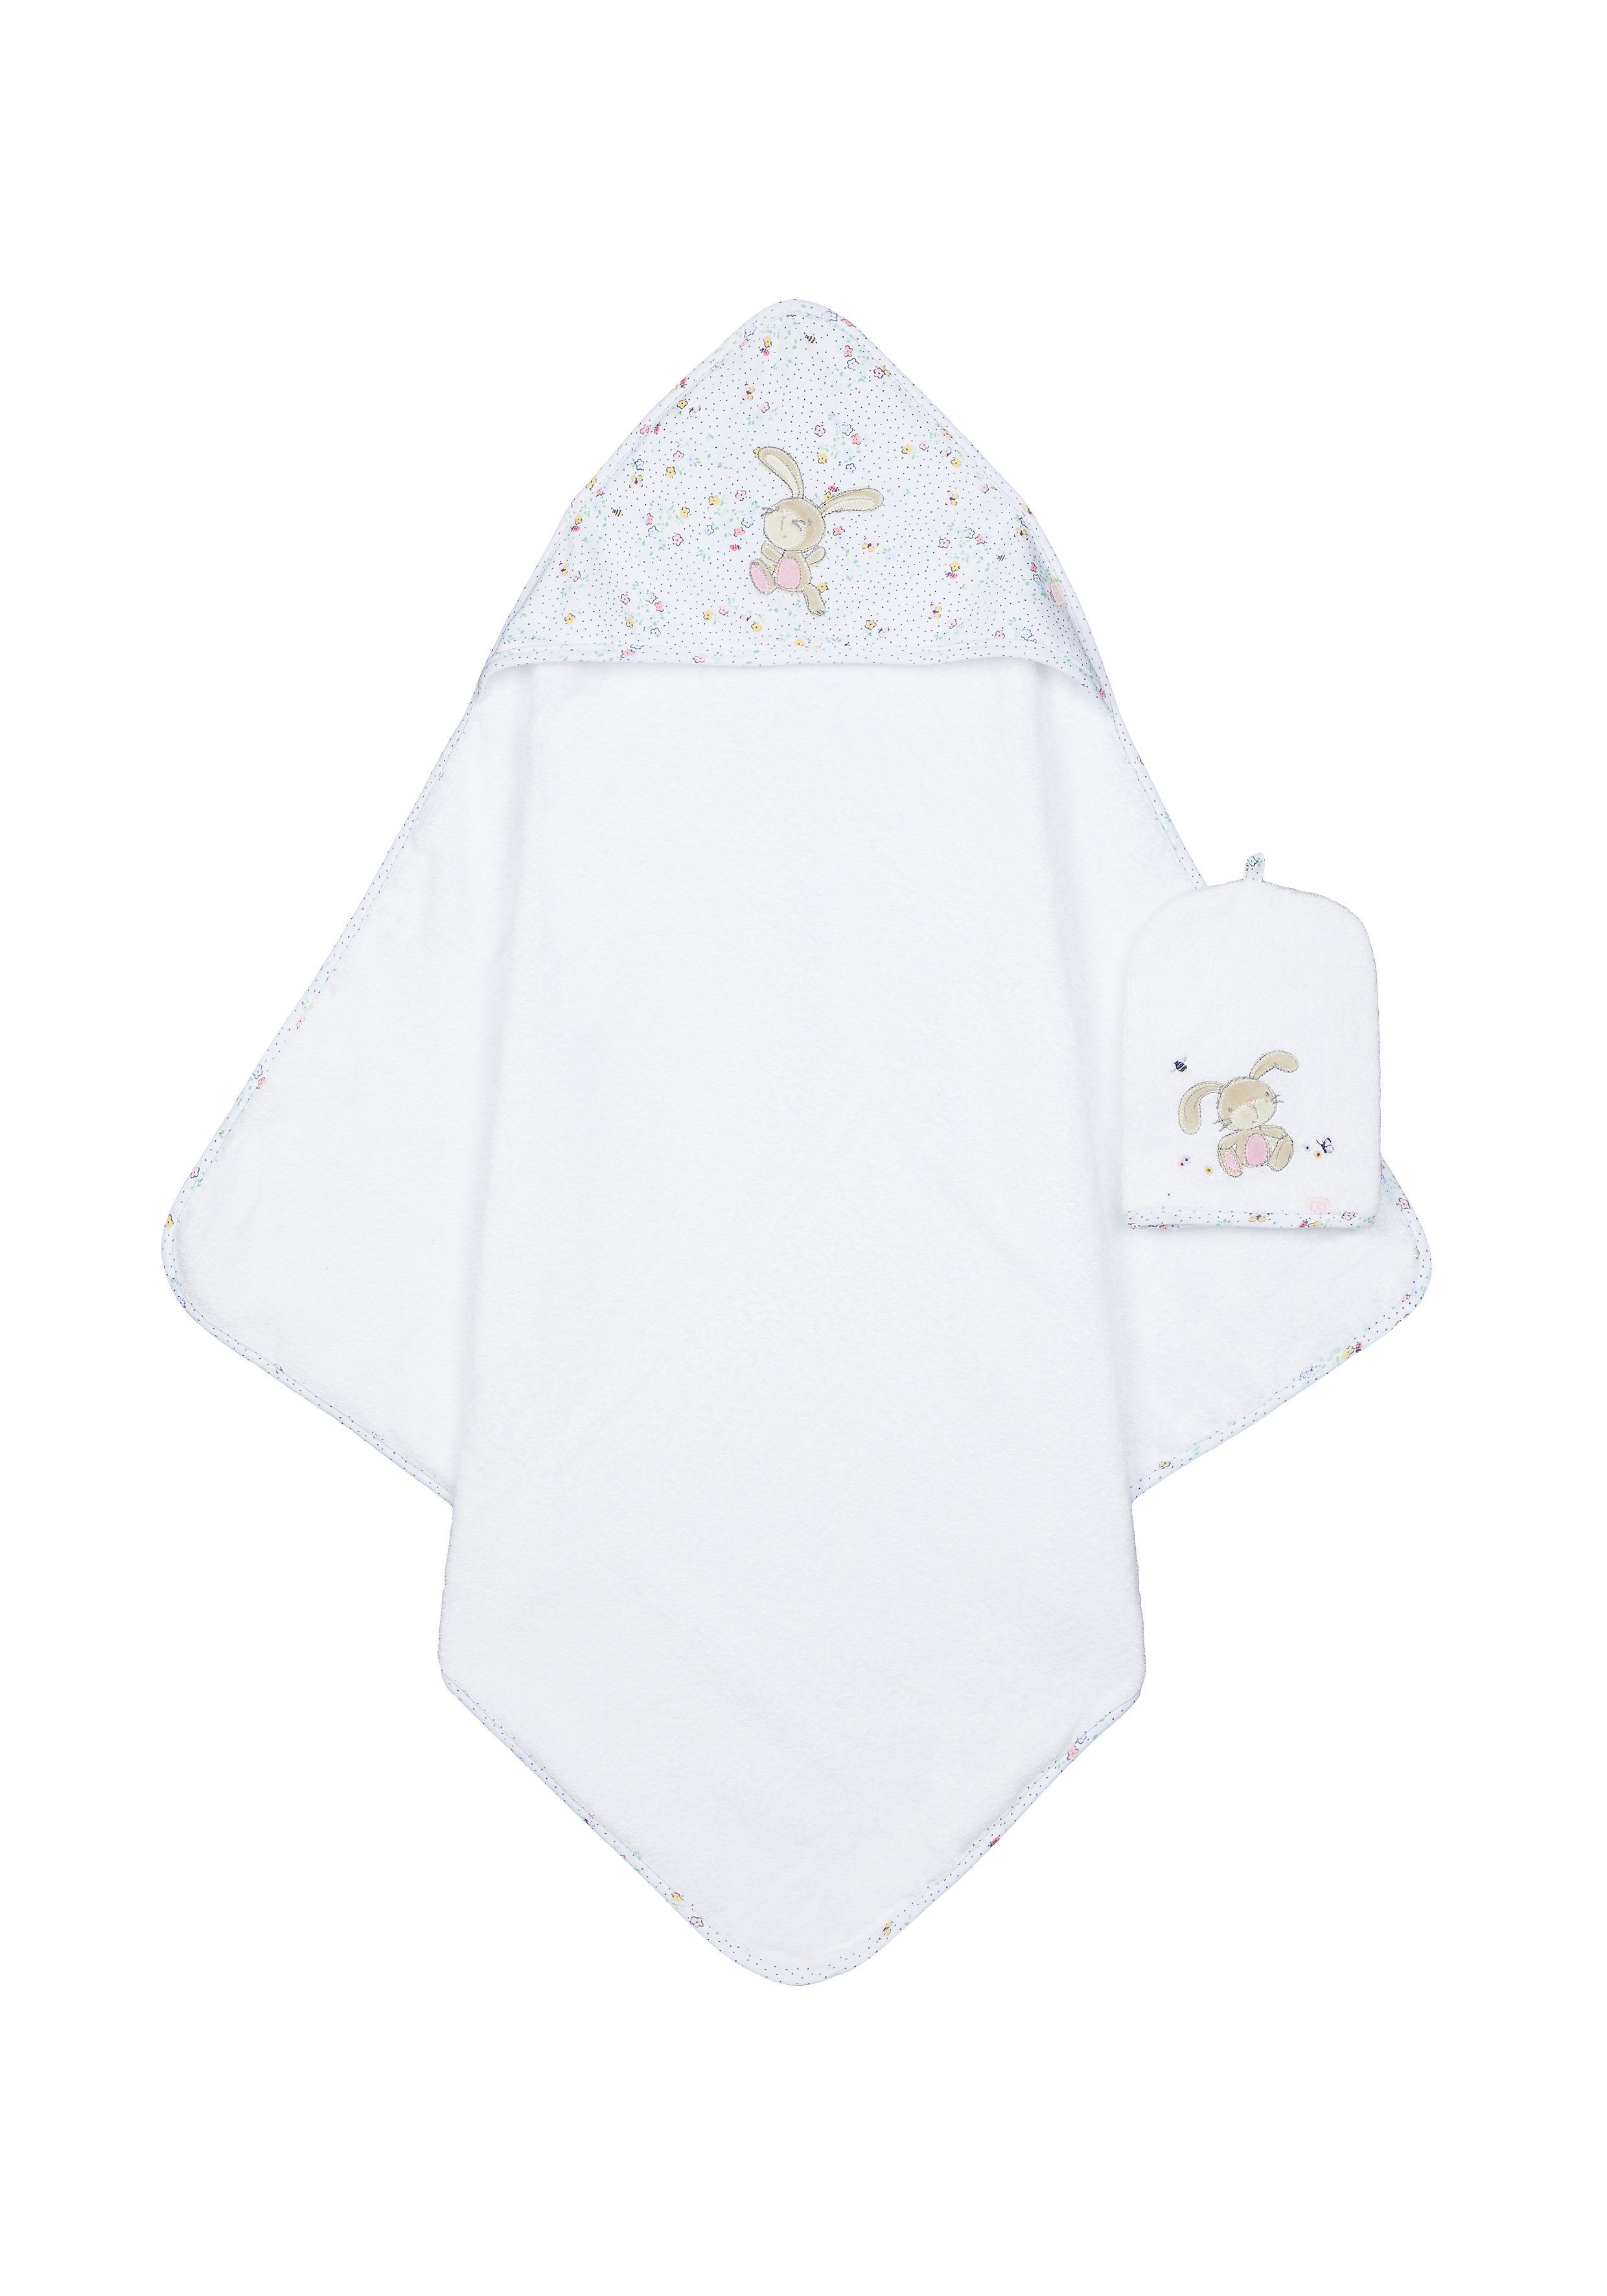 Mothercare   Mothercare Spring Flower Cuddle and Dry Baby Towels Mitt Multi